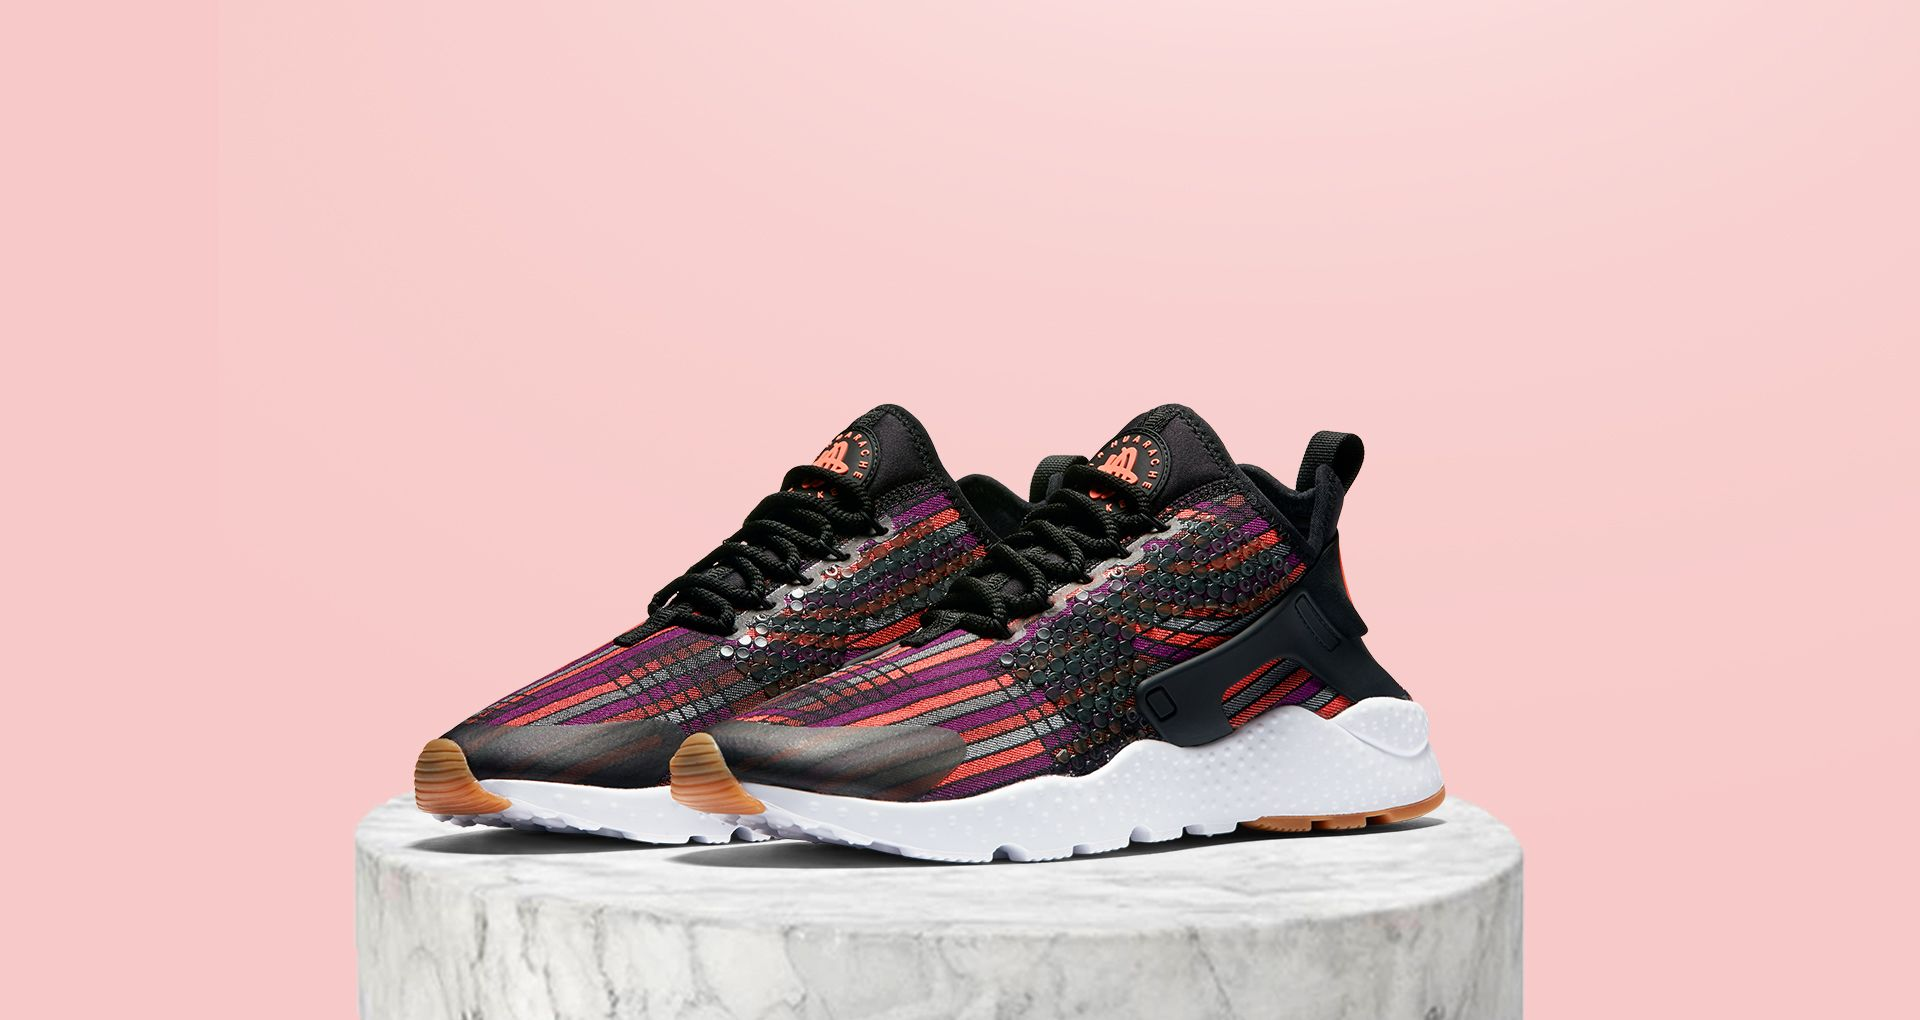 on sale 7c4f5 18341 WMNS AIR HUARACHE ULTRA JACQUARD